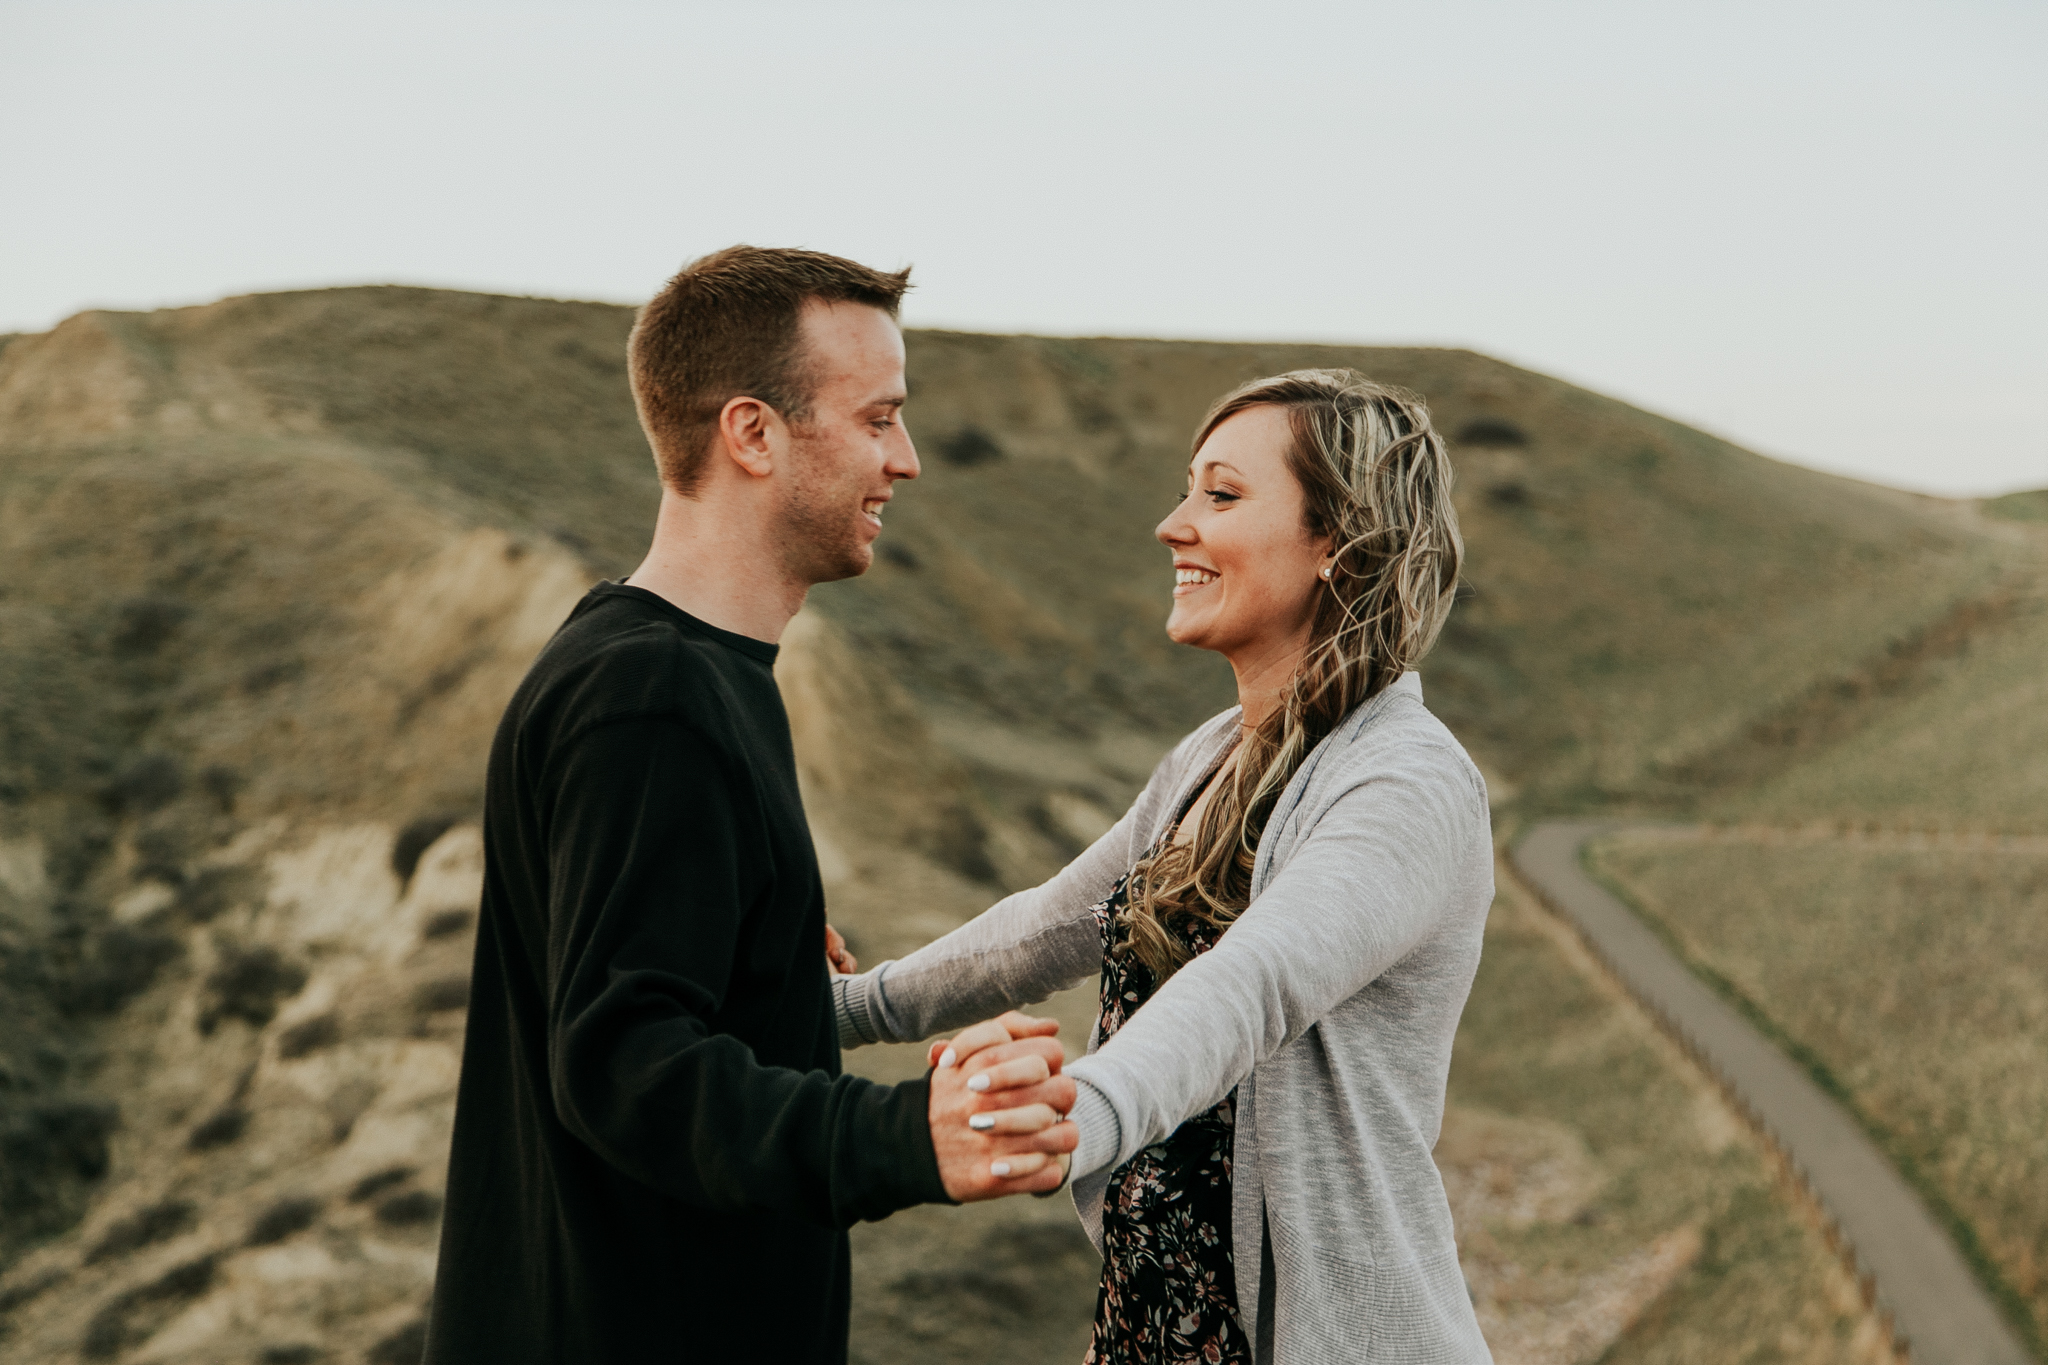 lethbridge-photographer-love-and-be-loved-photography-jessica-john-engagement-picture-image-photo-29.jpg